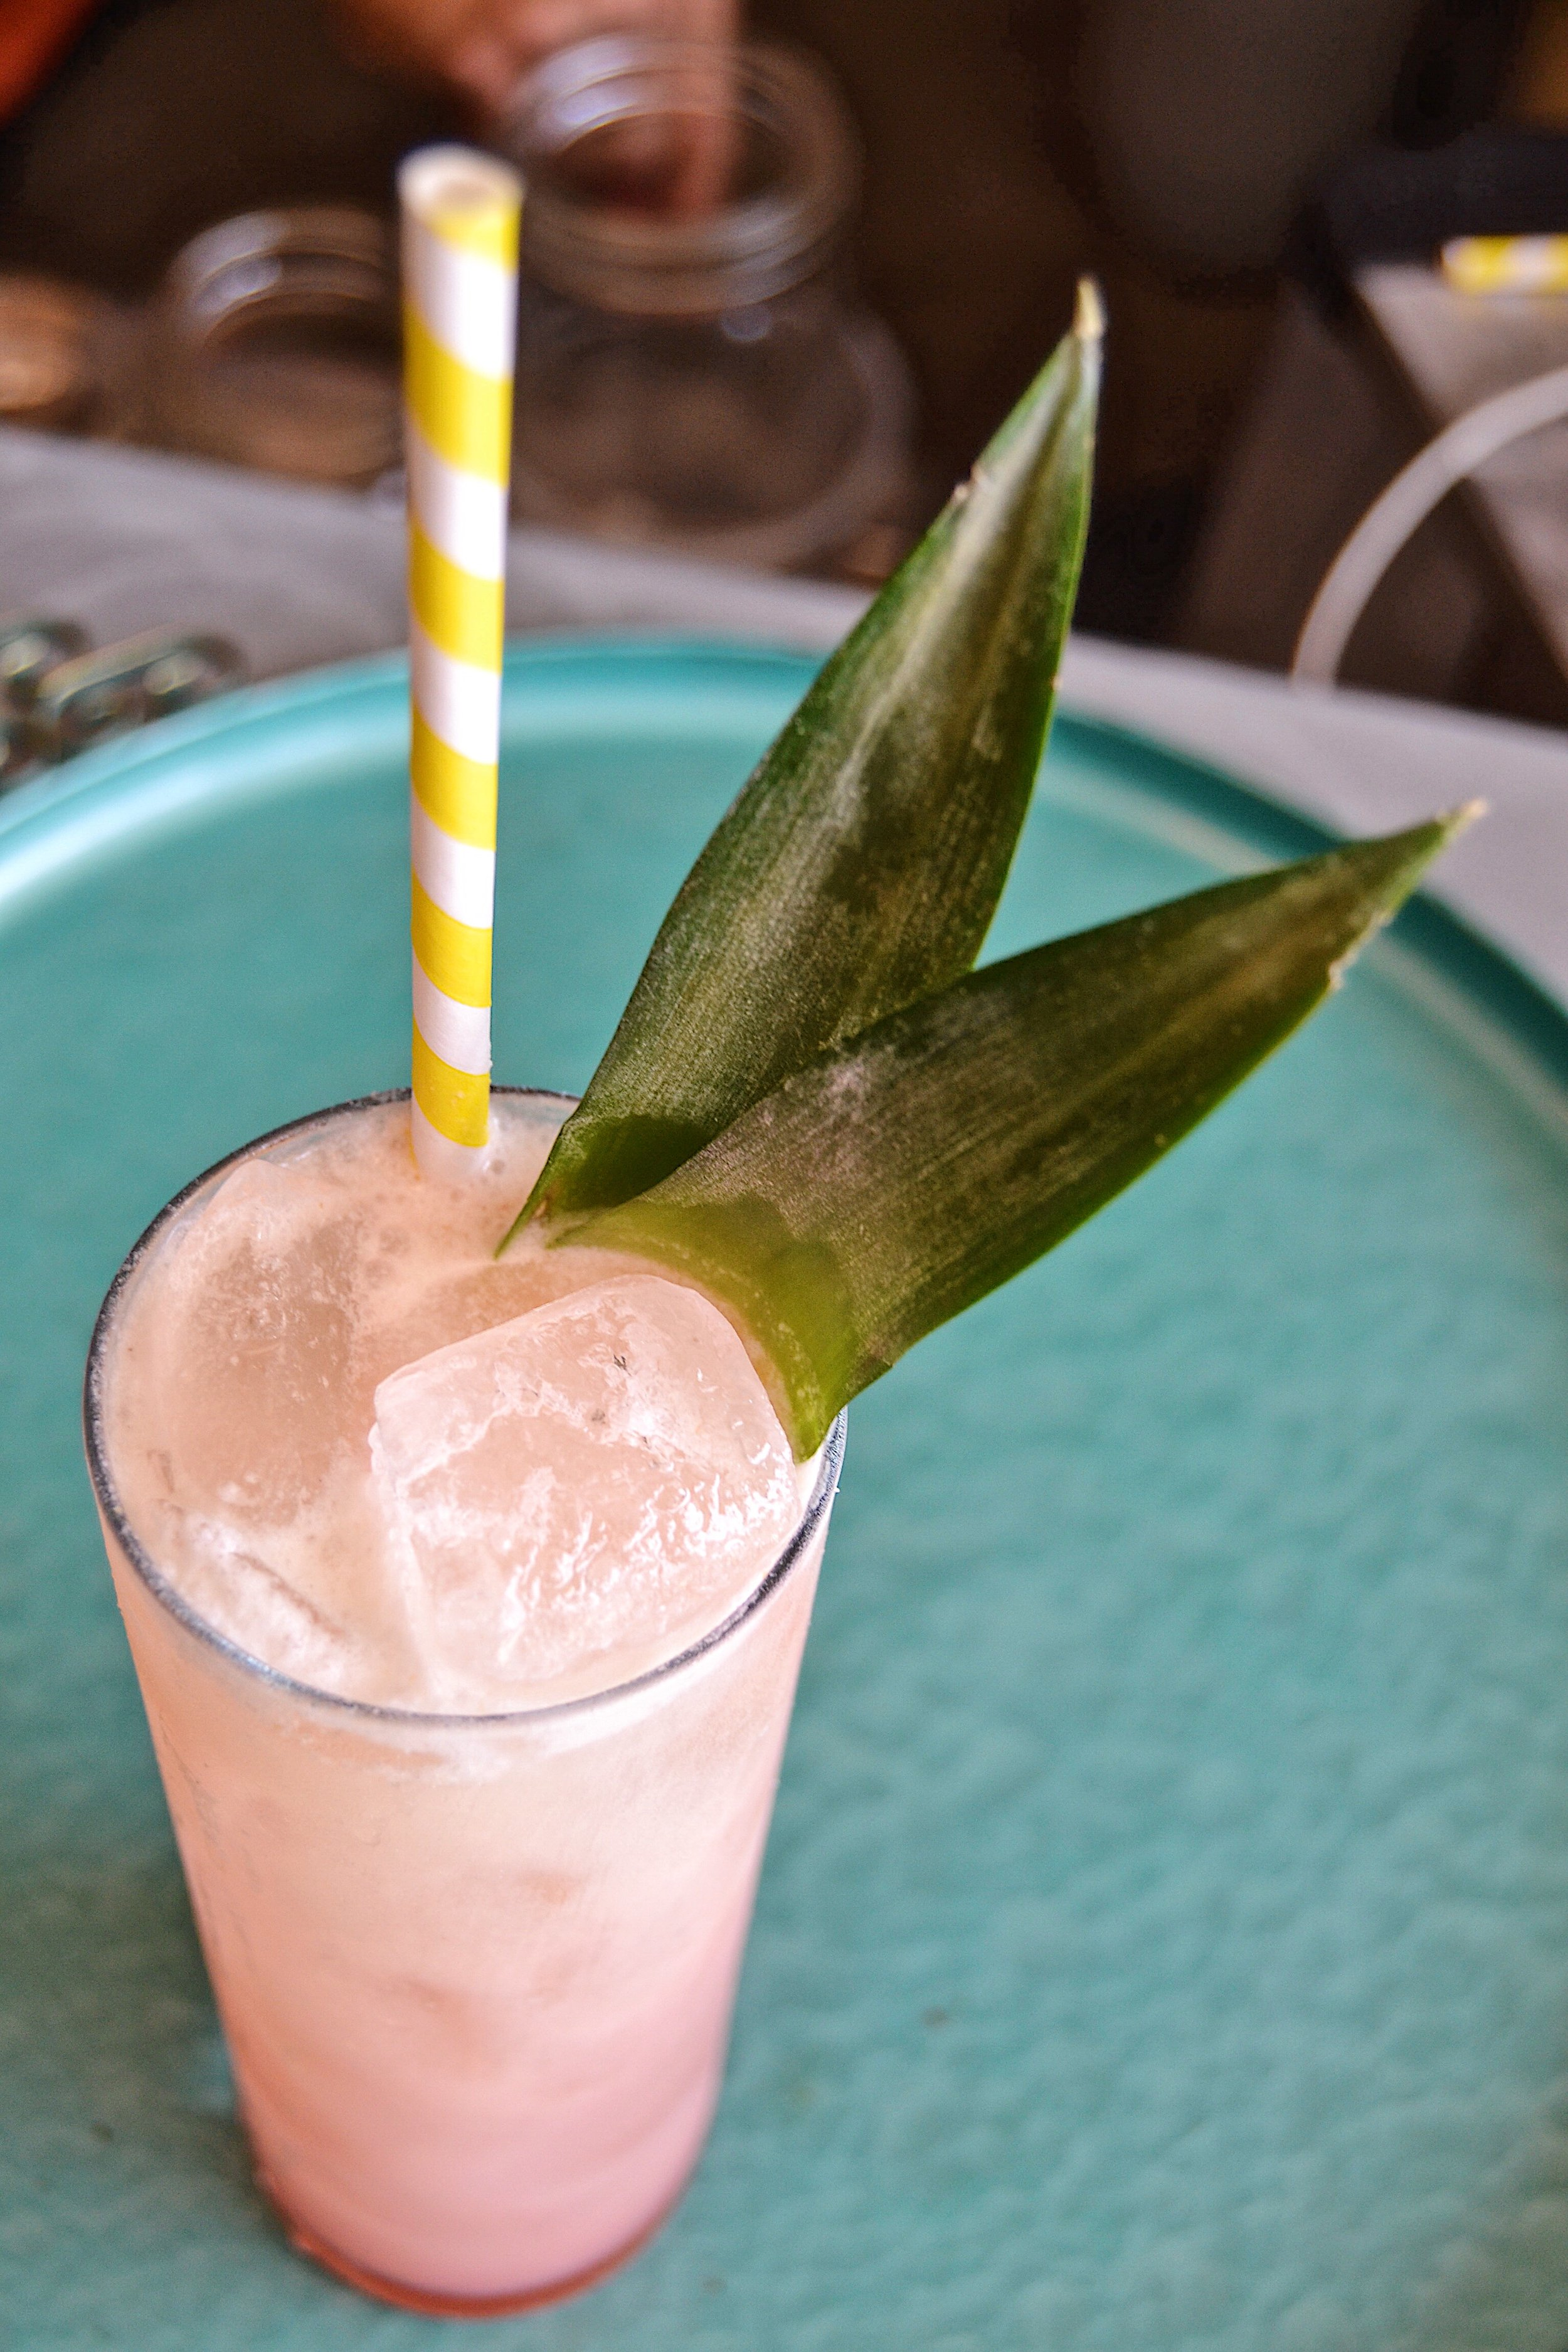 AMERICAN FLAMINGO Go birds. Aquavit, Funky Rm, Passionfruit Liqueur, Jackfruit-Coconut Syrup, Lime Juice. Topped with Dock Street Summer in Berlin.$12